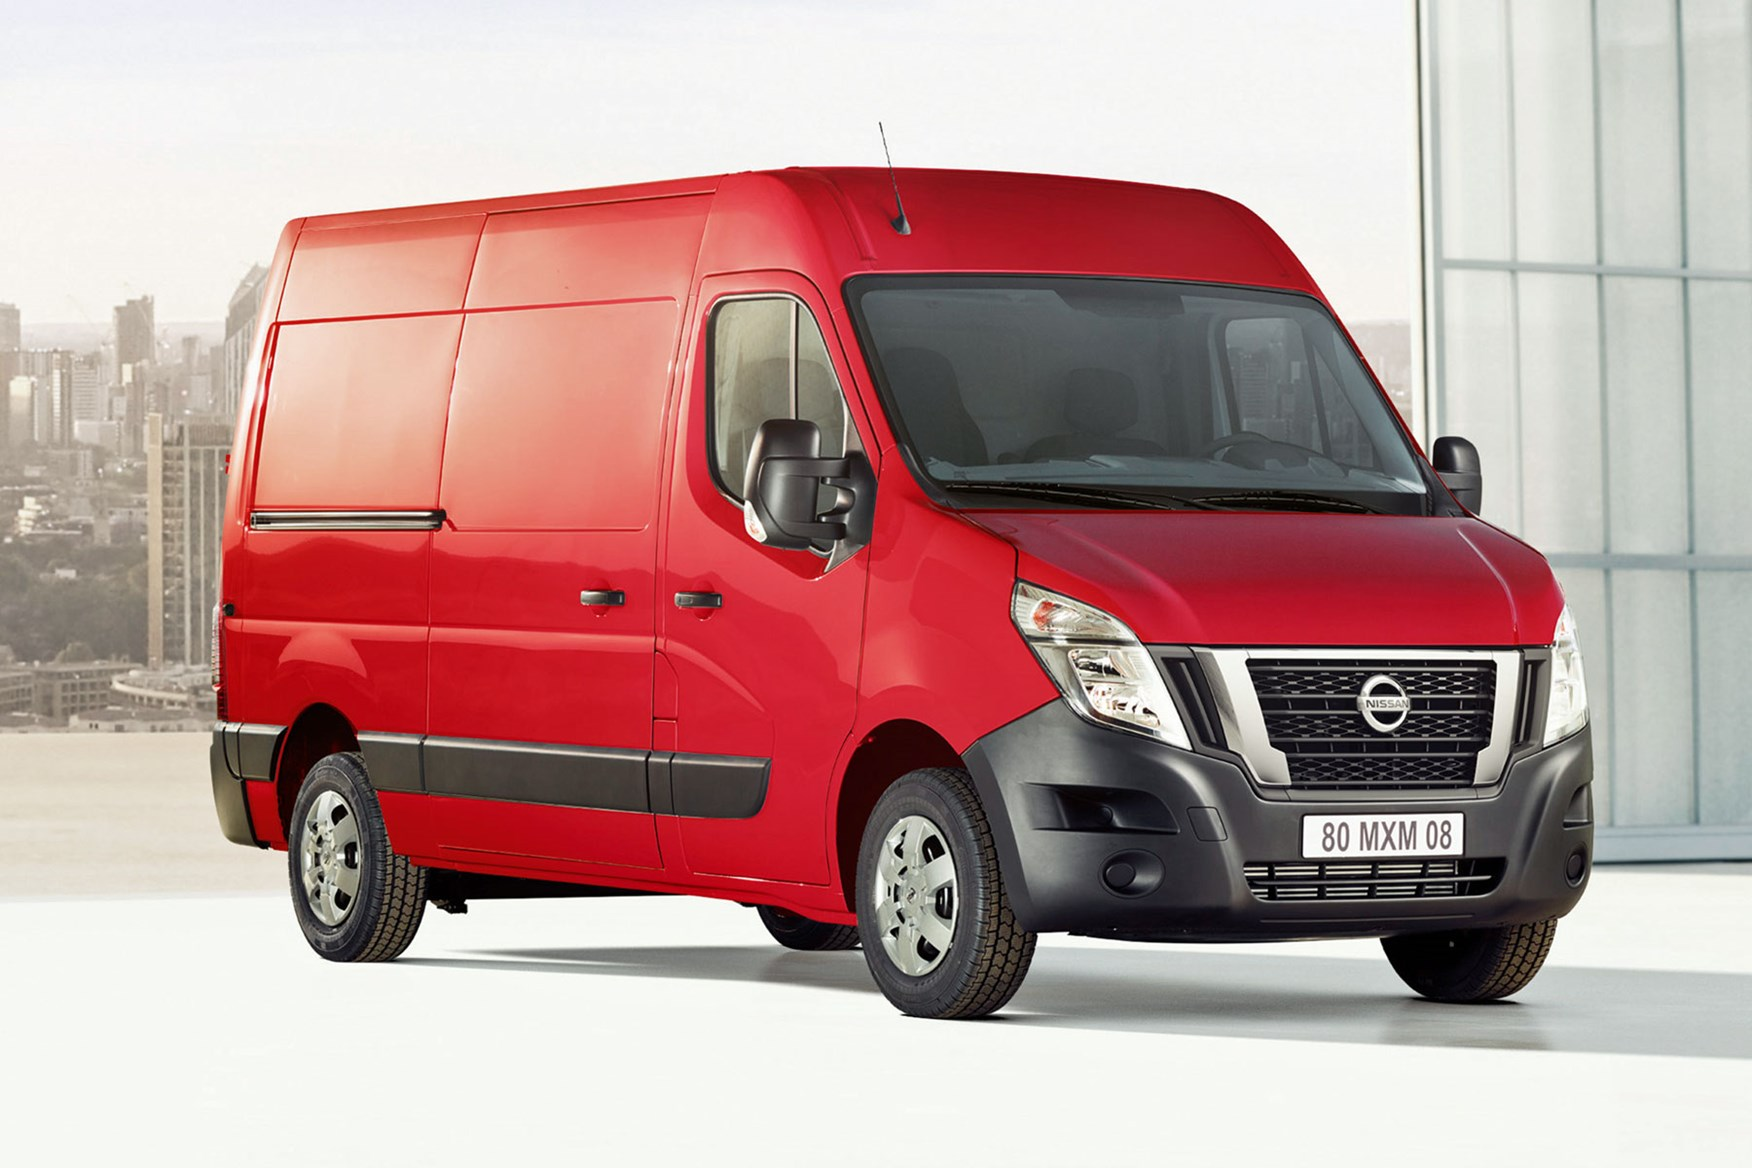 Nissan NV400 review - red, front view, 2019 model